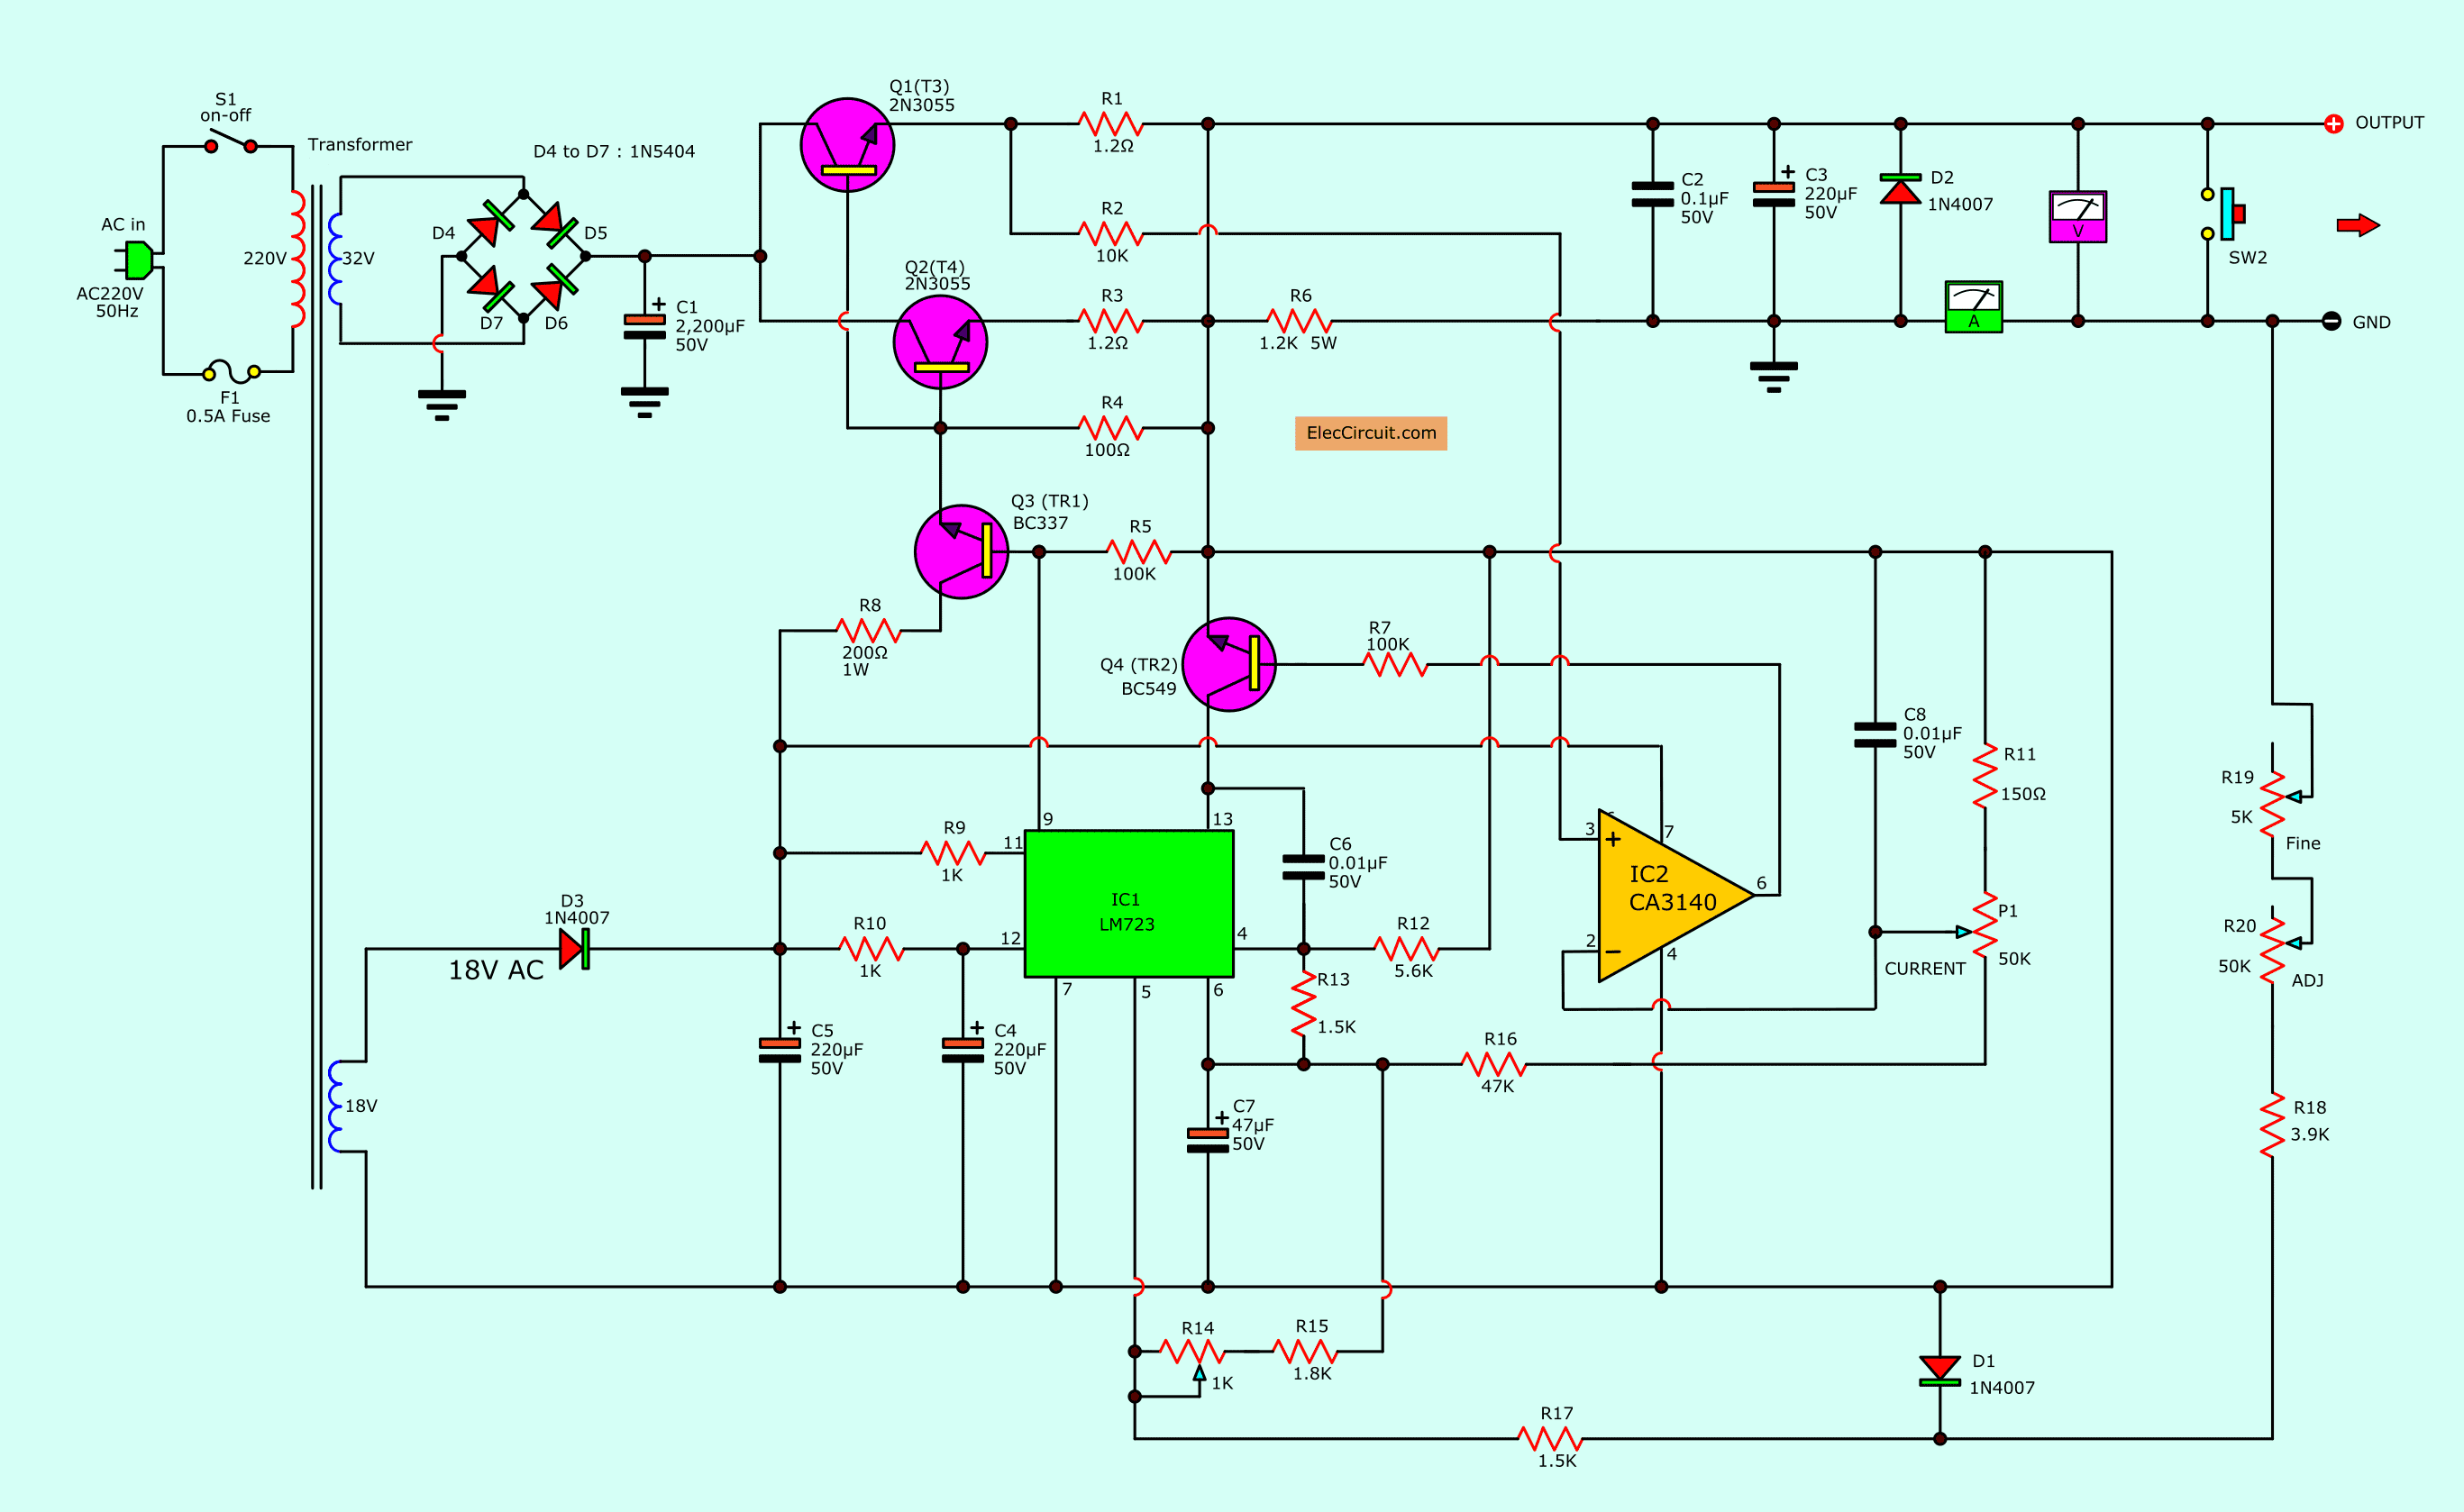 Motor Starter Wiring Diagram as well LM317 Adjustable Voltage Regulator Circuit furthermore DIY CNC Wiring Diagram as well VFD Control Wiring Diagram besides Split Phase Motor Wiring Diagram. on vfd control wiring circuit diagram